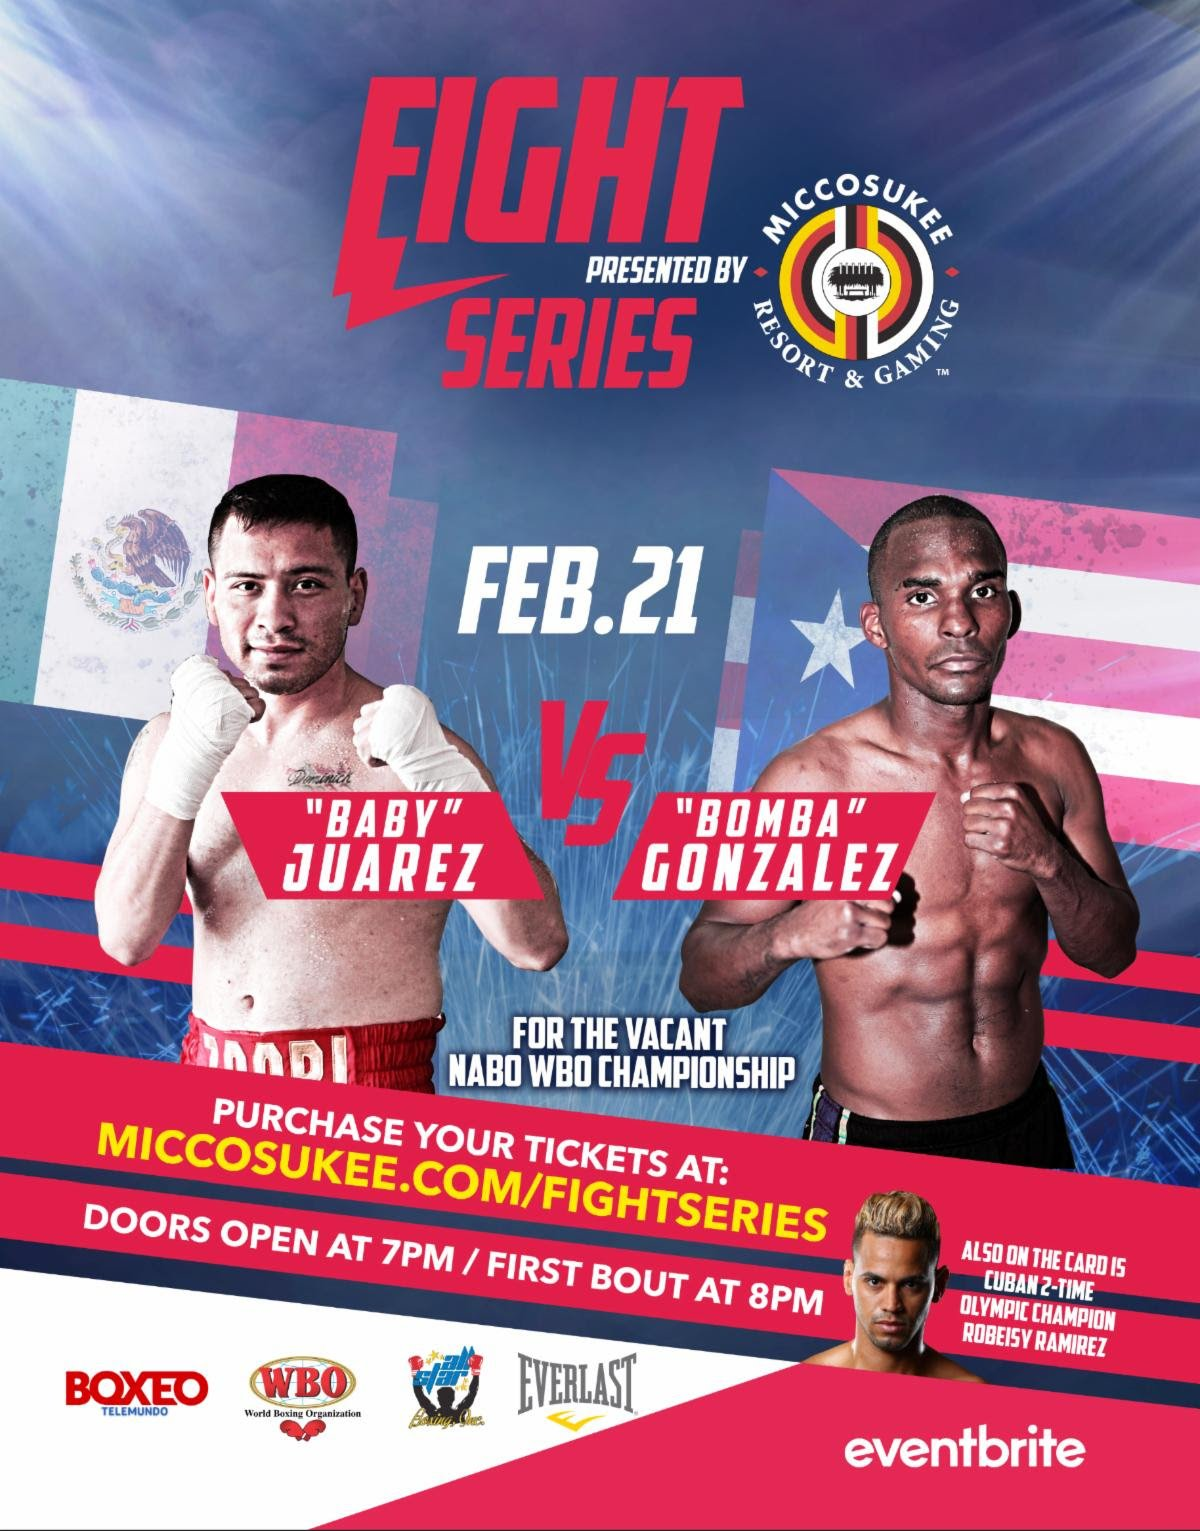 "Jonathan Gonzalez, Saul Juarez -  Boxeo Telemundo returns this Friday to kick off its 31st straight year on air with another chapter in the famed classic ""Puerto Rico vs Mexico"" as WBO #8 WBA #13 Jonathan ""Bomba"" Gonzalez (22-3-1 13 KO's) of Caguas, PR faces WBC #6 WBO #15 Saul ""Baby"" Juarez (25-10-2 13 KO's) of Mexico City, MX."